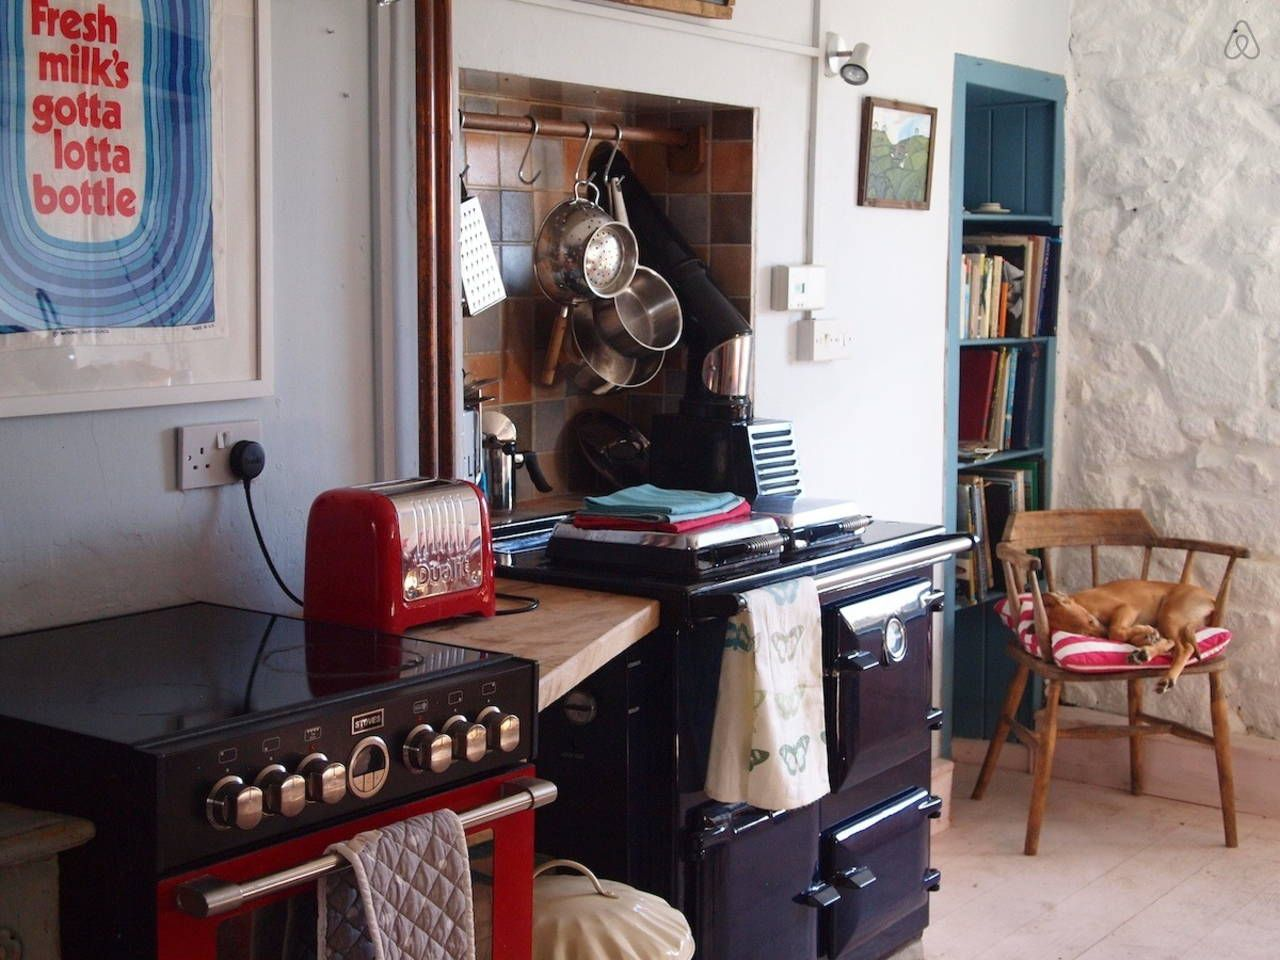 Air bnb £47 pp for 3 nights